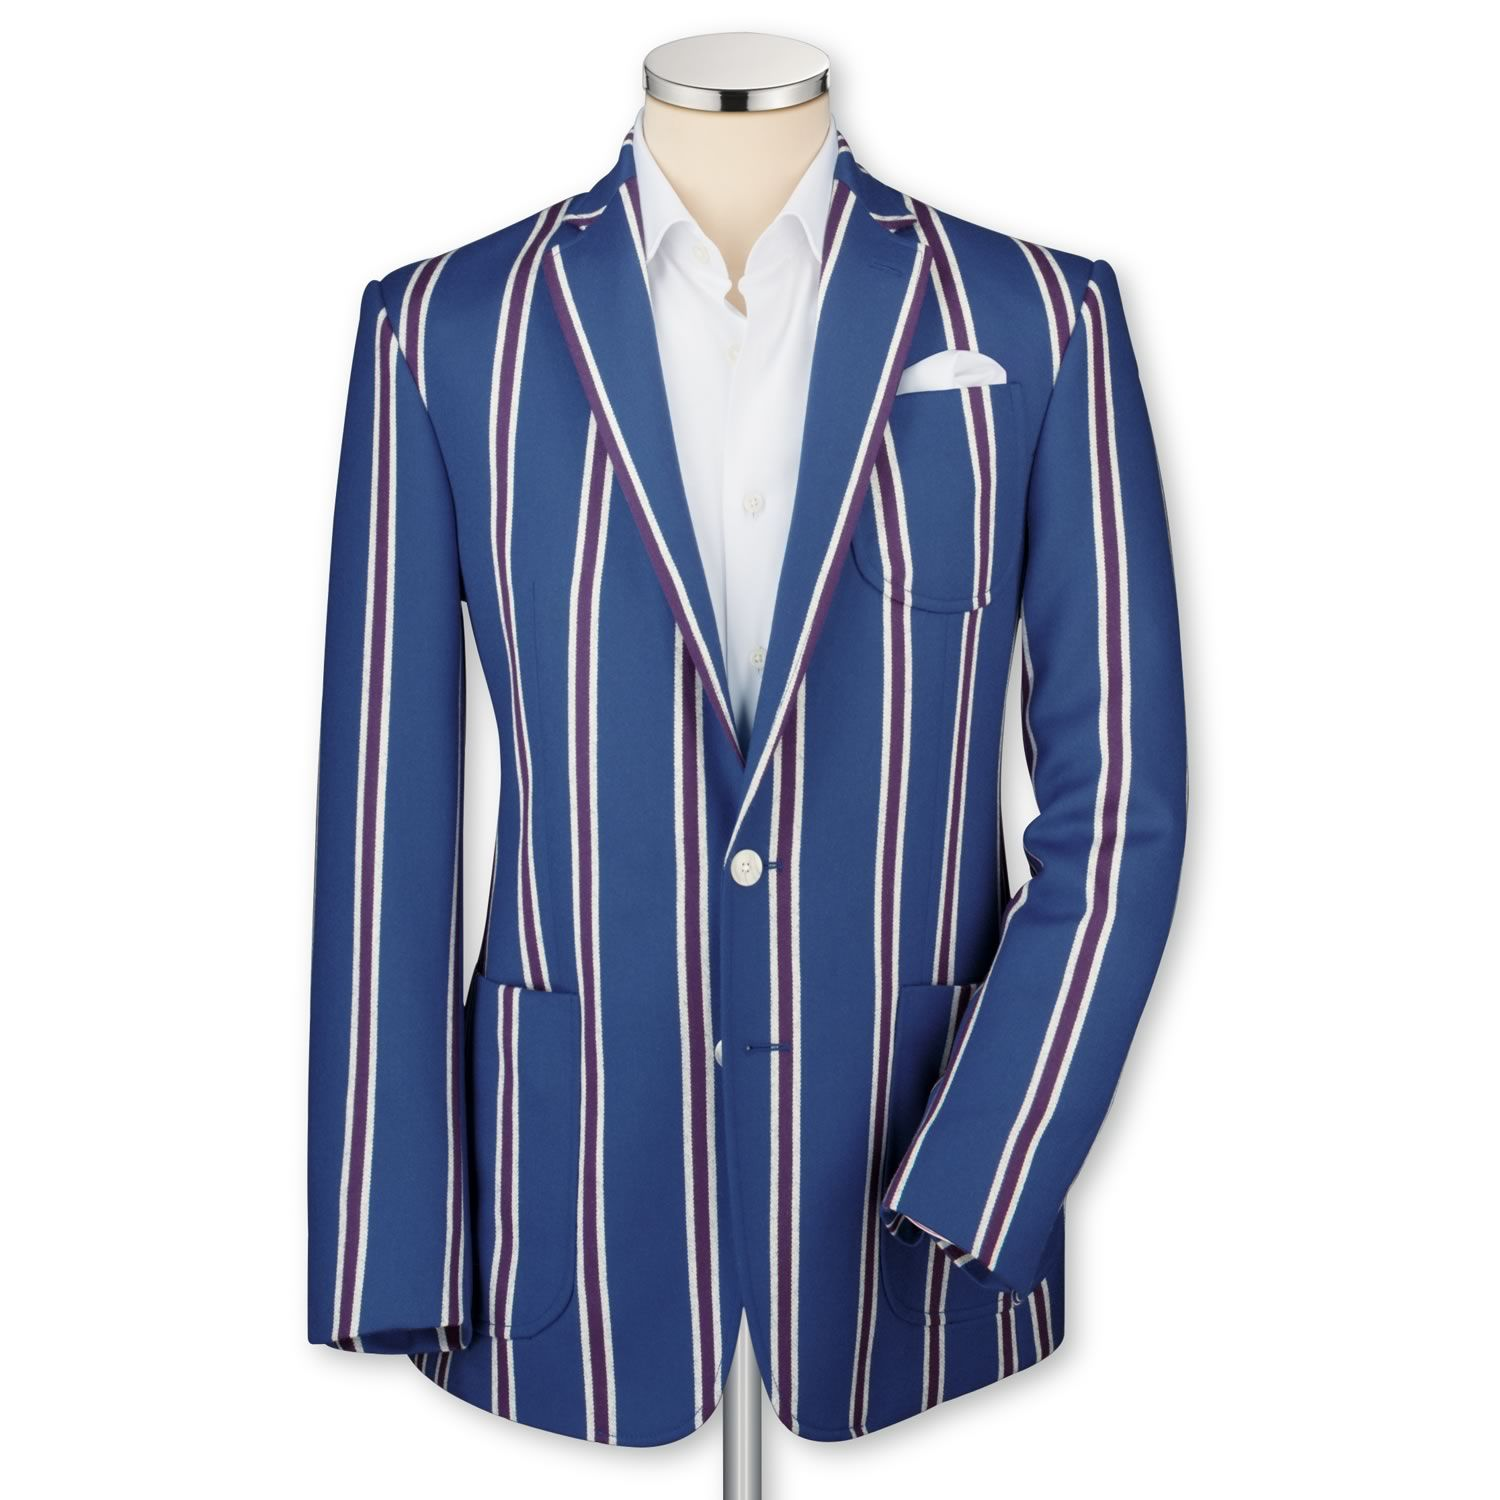 5246ccd7b89 Royal   purple tailored fit boating blazer